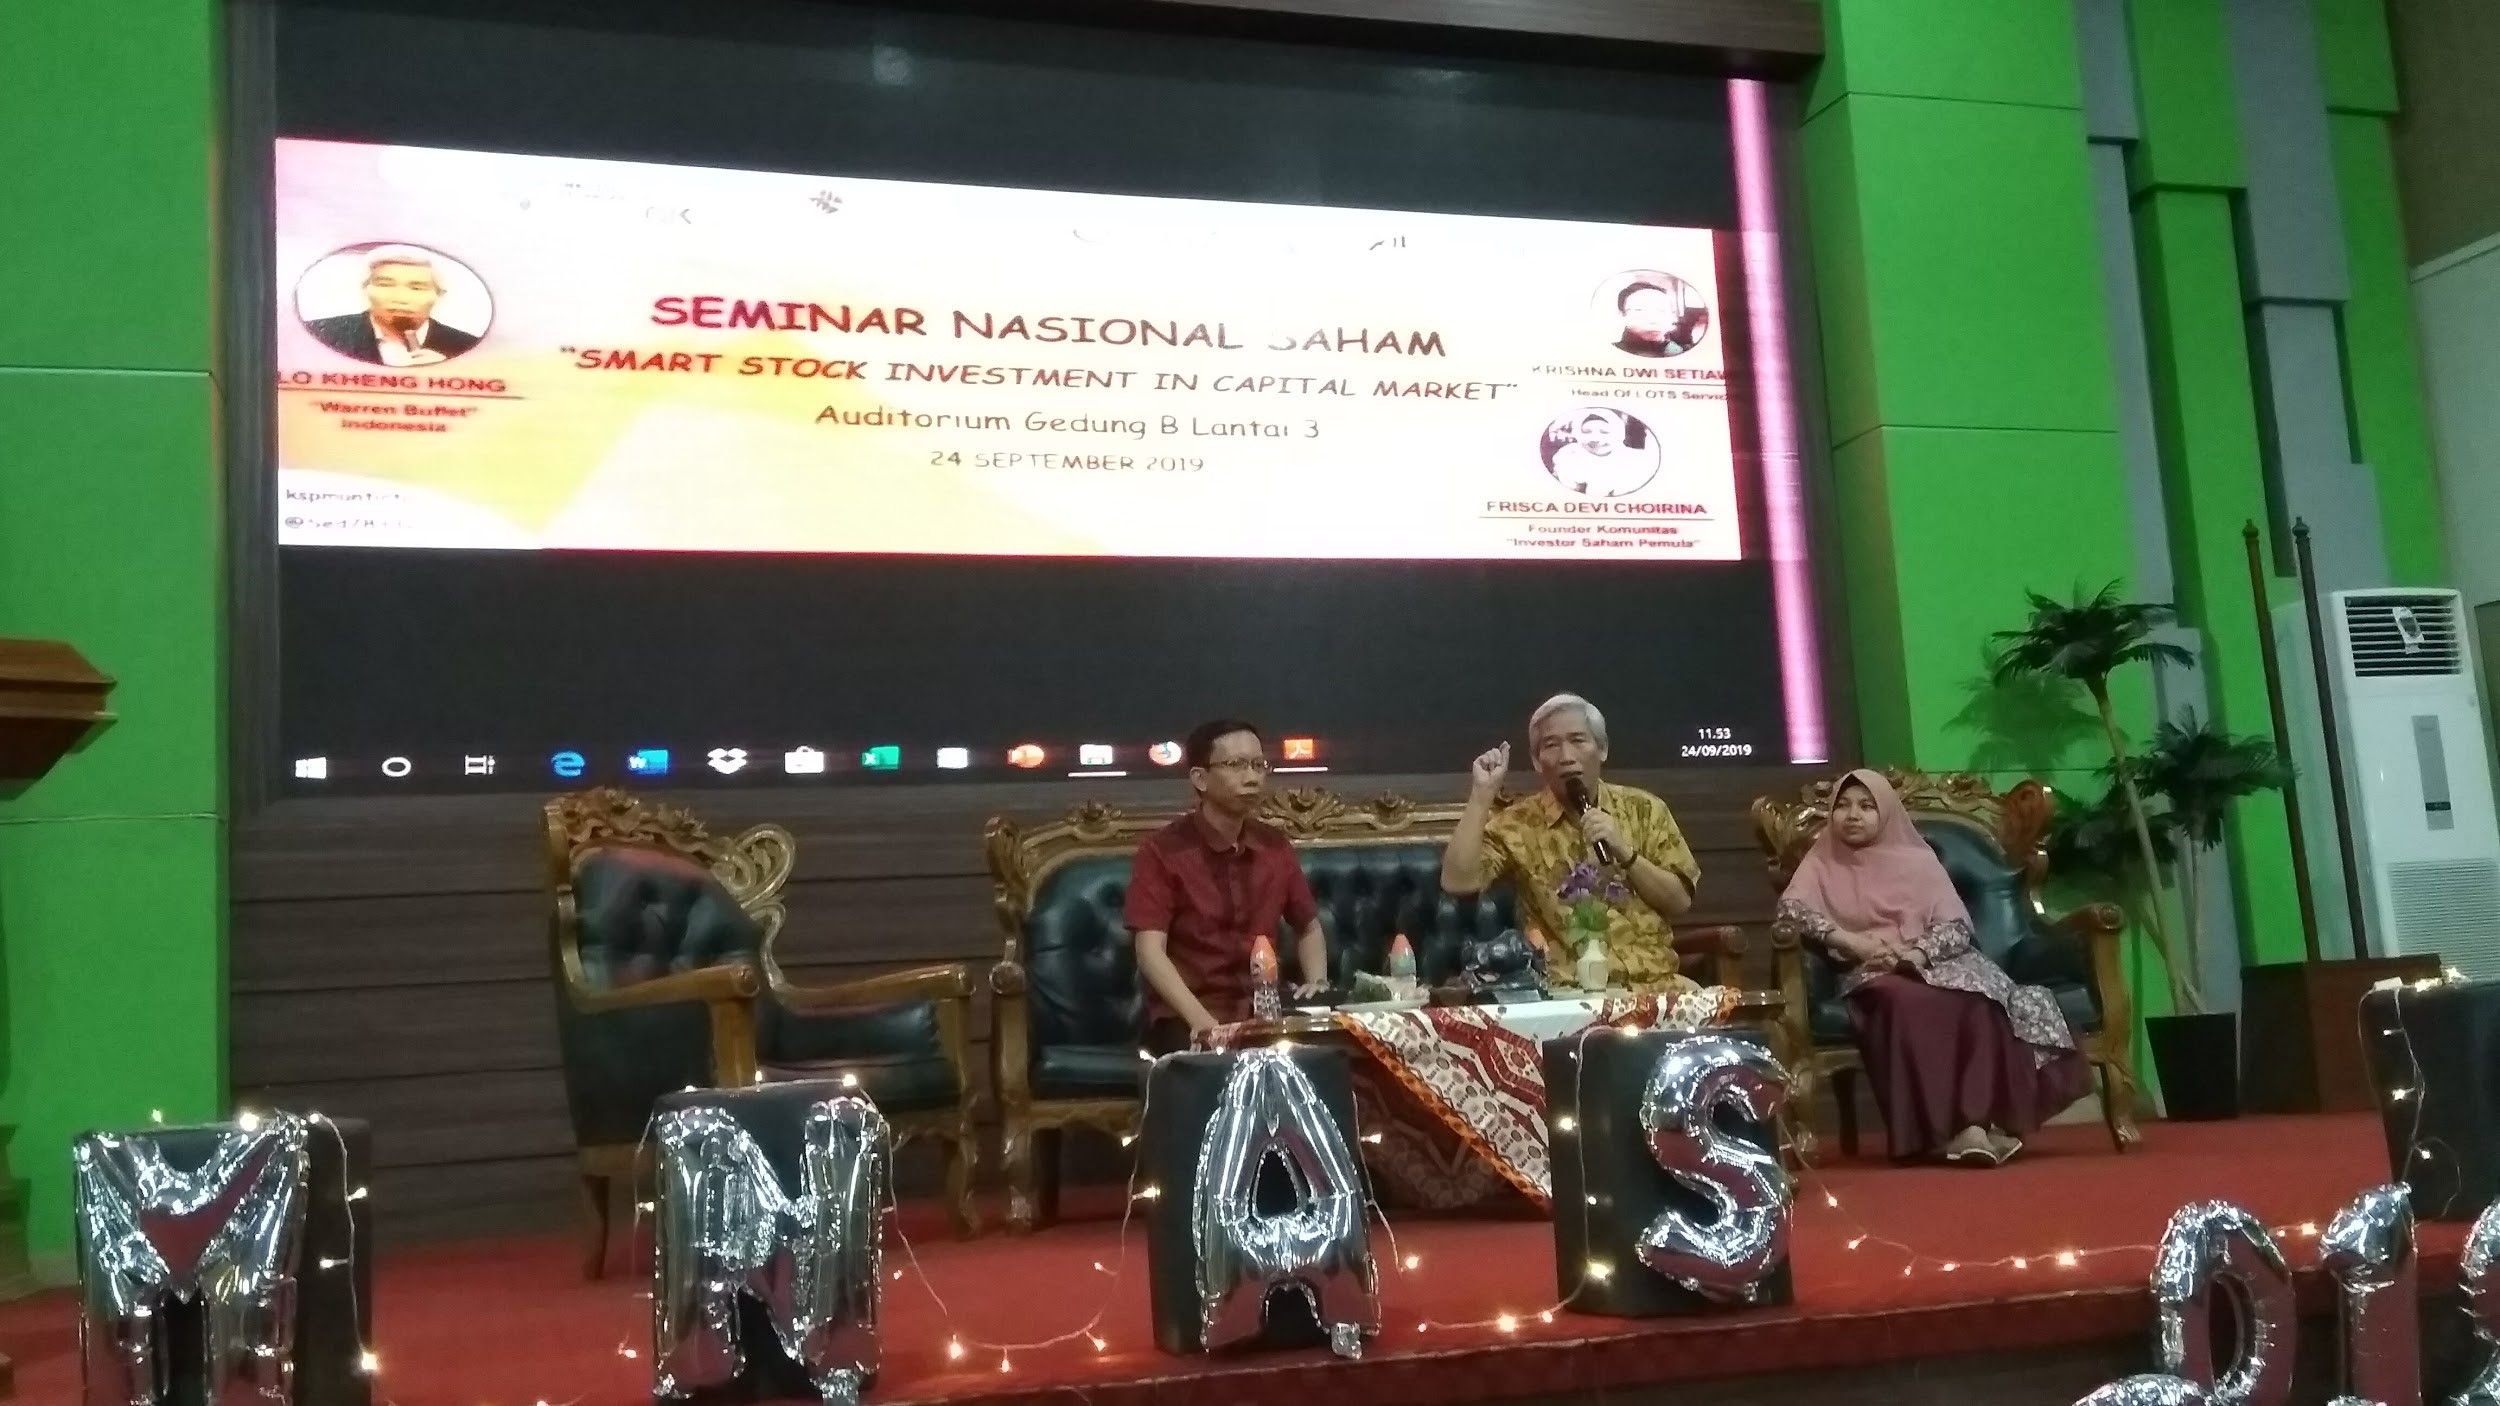 SEMINAR NASIONAL SAHAM 2019: SMART STOCK INVESMENT IN CAPITAL MARKET